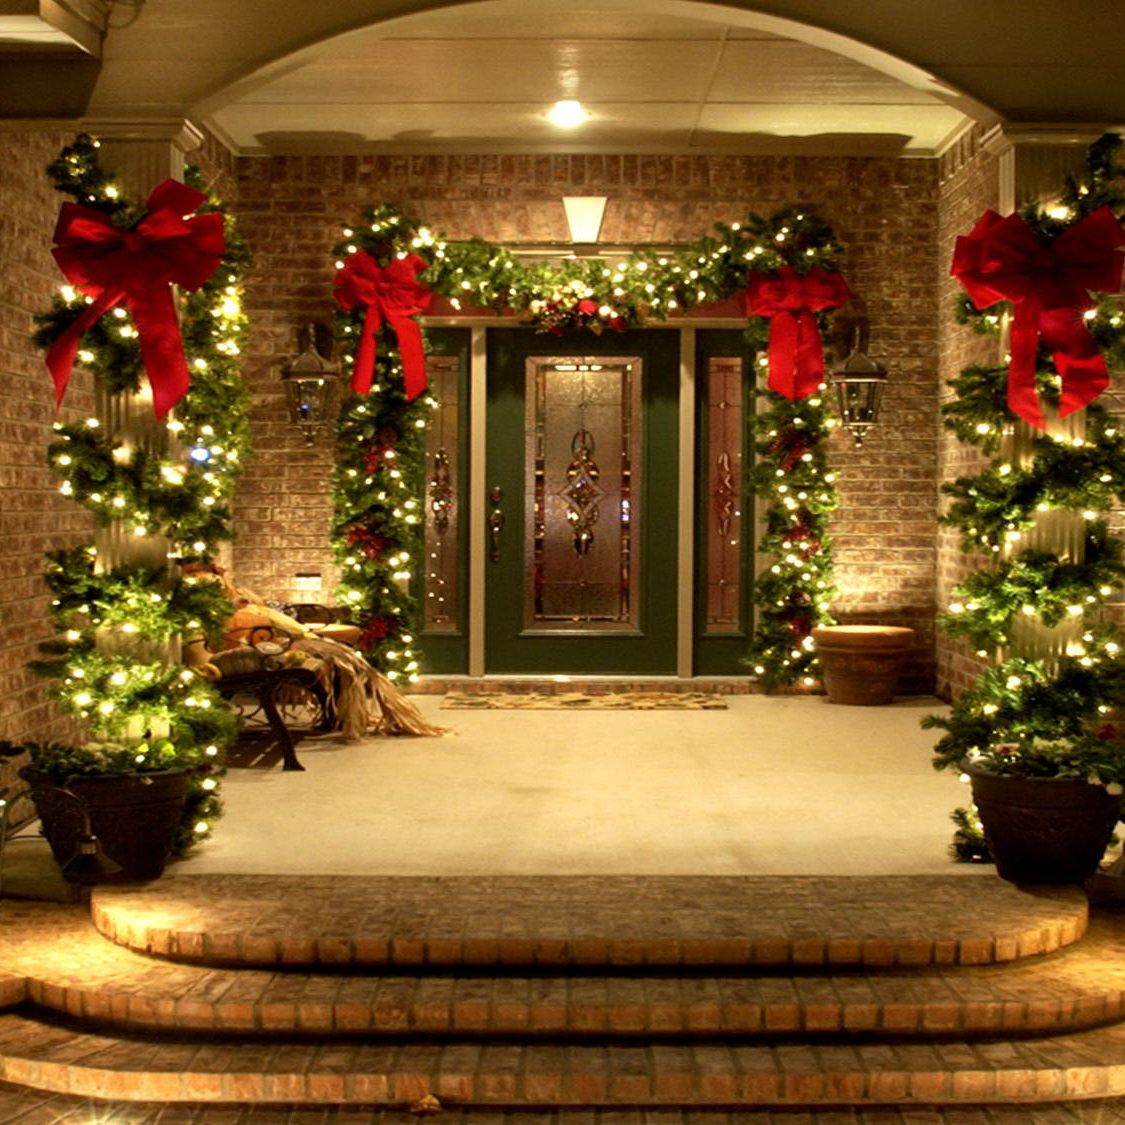 18 Most Striking DIY Christmas Porch Decorations That Will Melt Your Heart